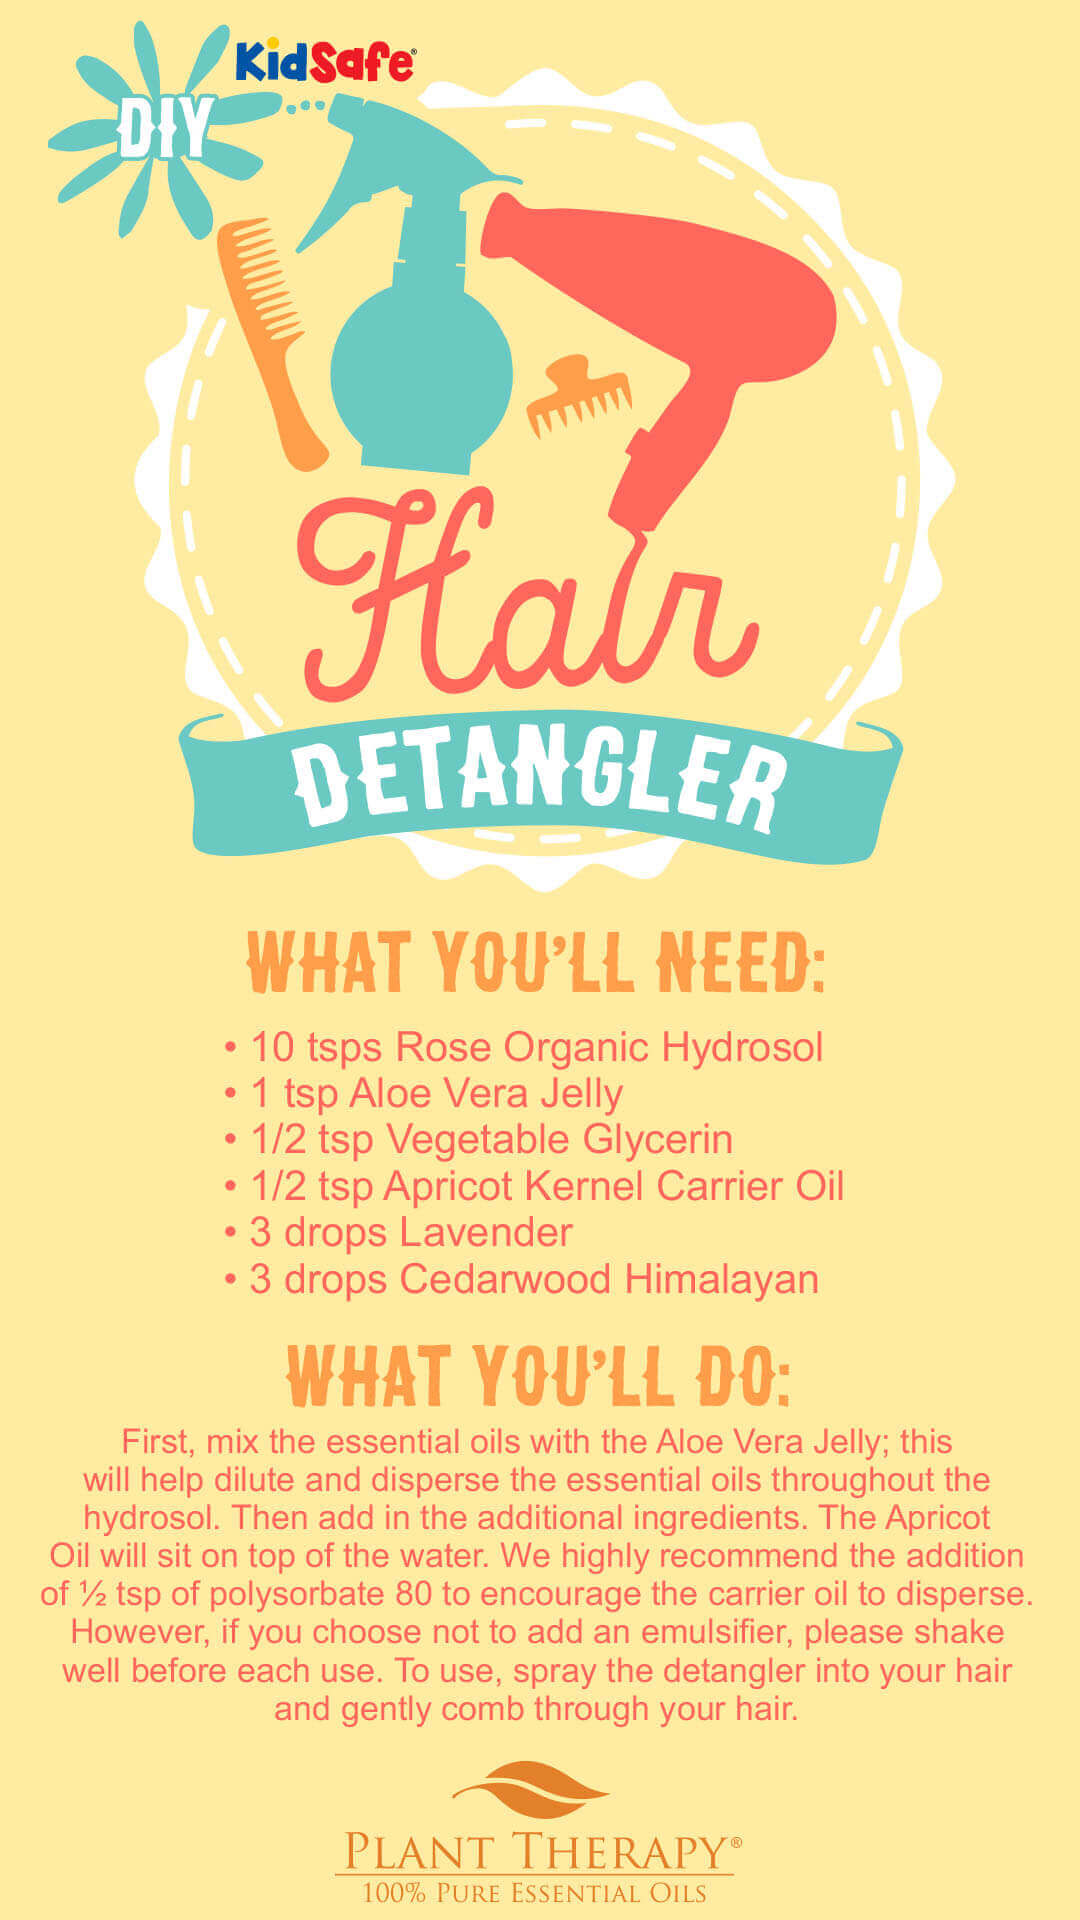 DIY essential oil hair detangler